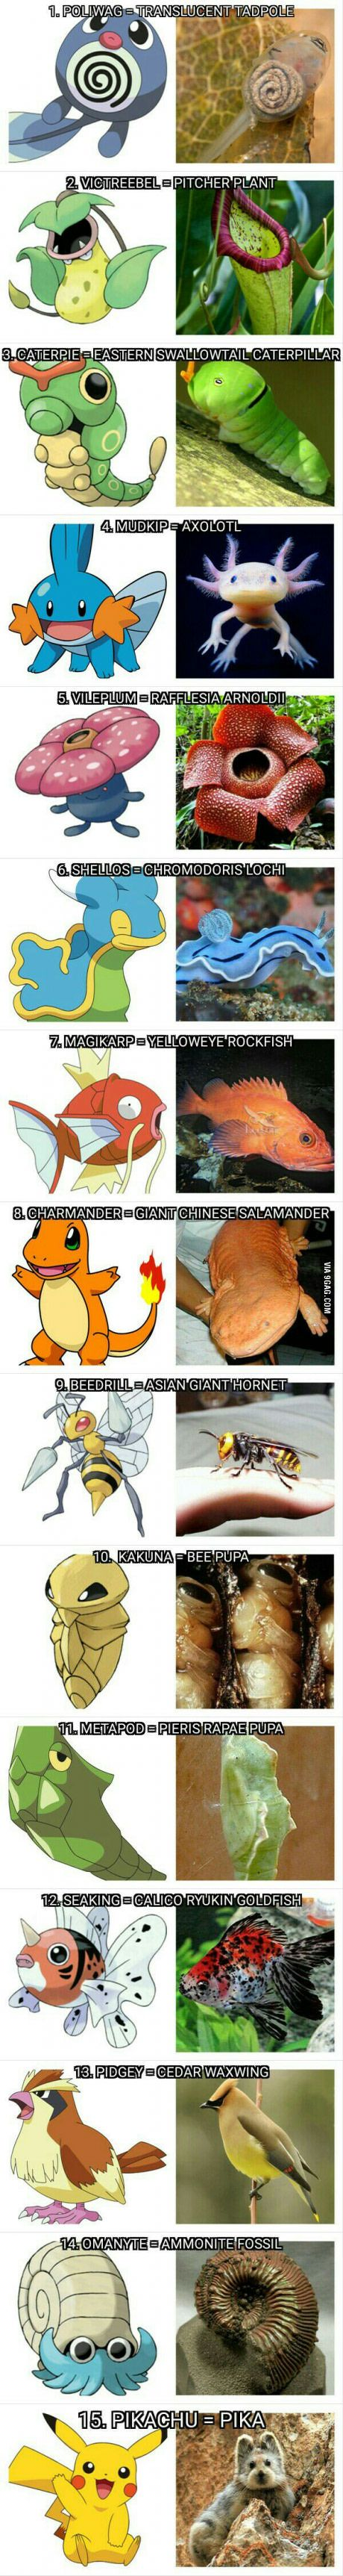 15 Pokémon And Their Real-Life Equivalent, Time to catch em all.!